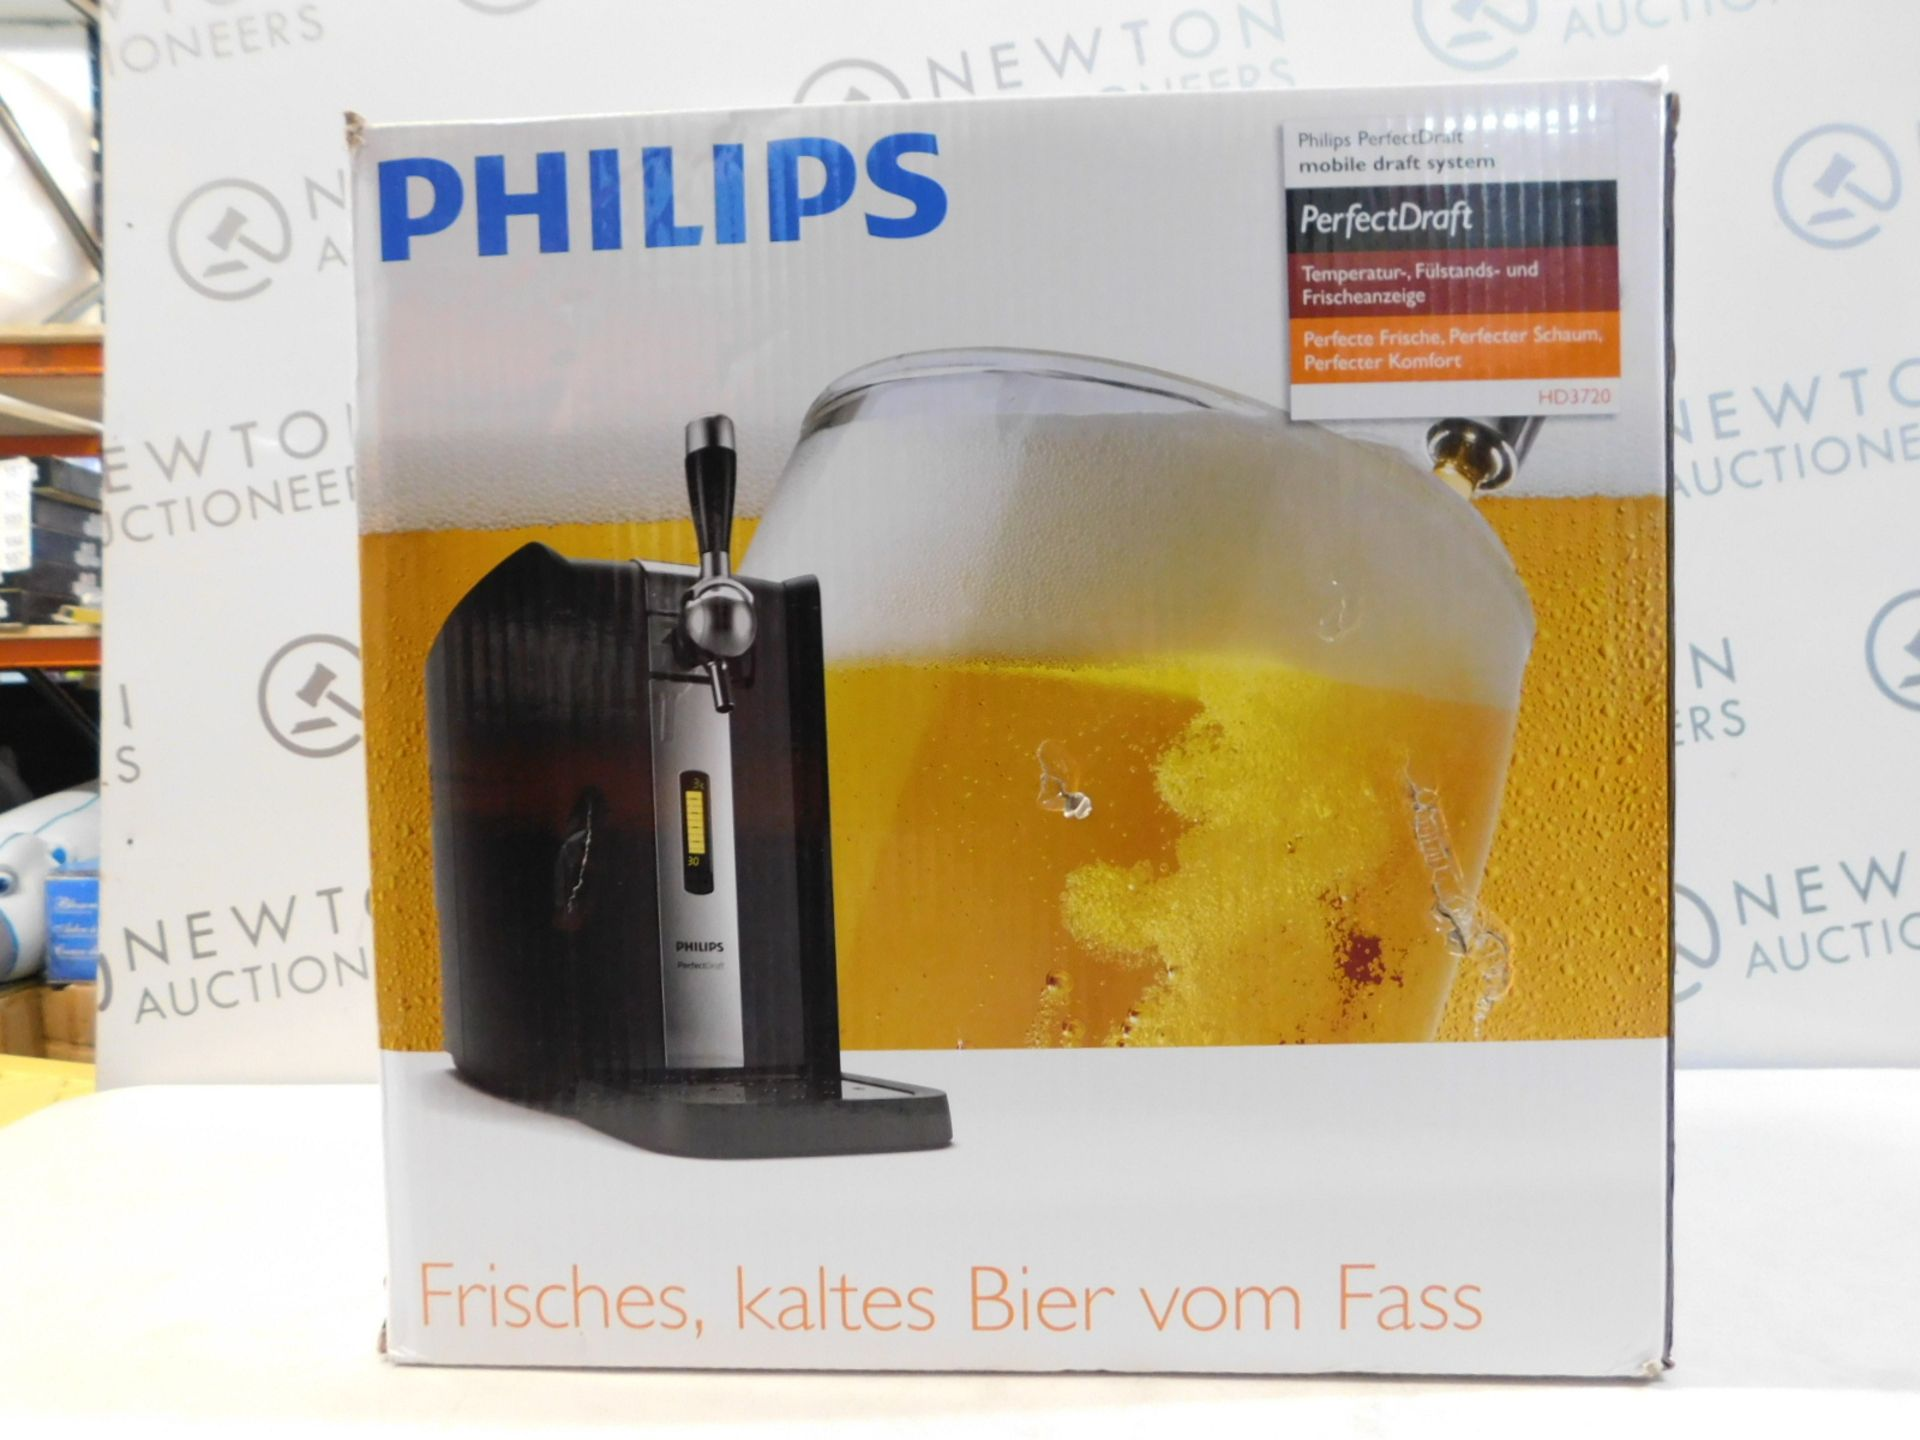 1 BOXED PHILIPS PERFECTDRAFT HOME BEER DRAFT SYSTEM RRP £259